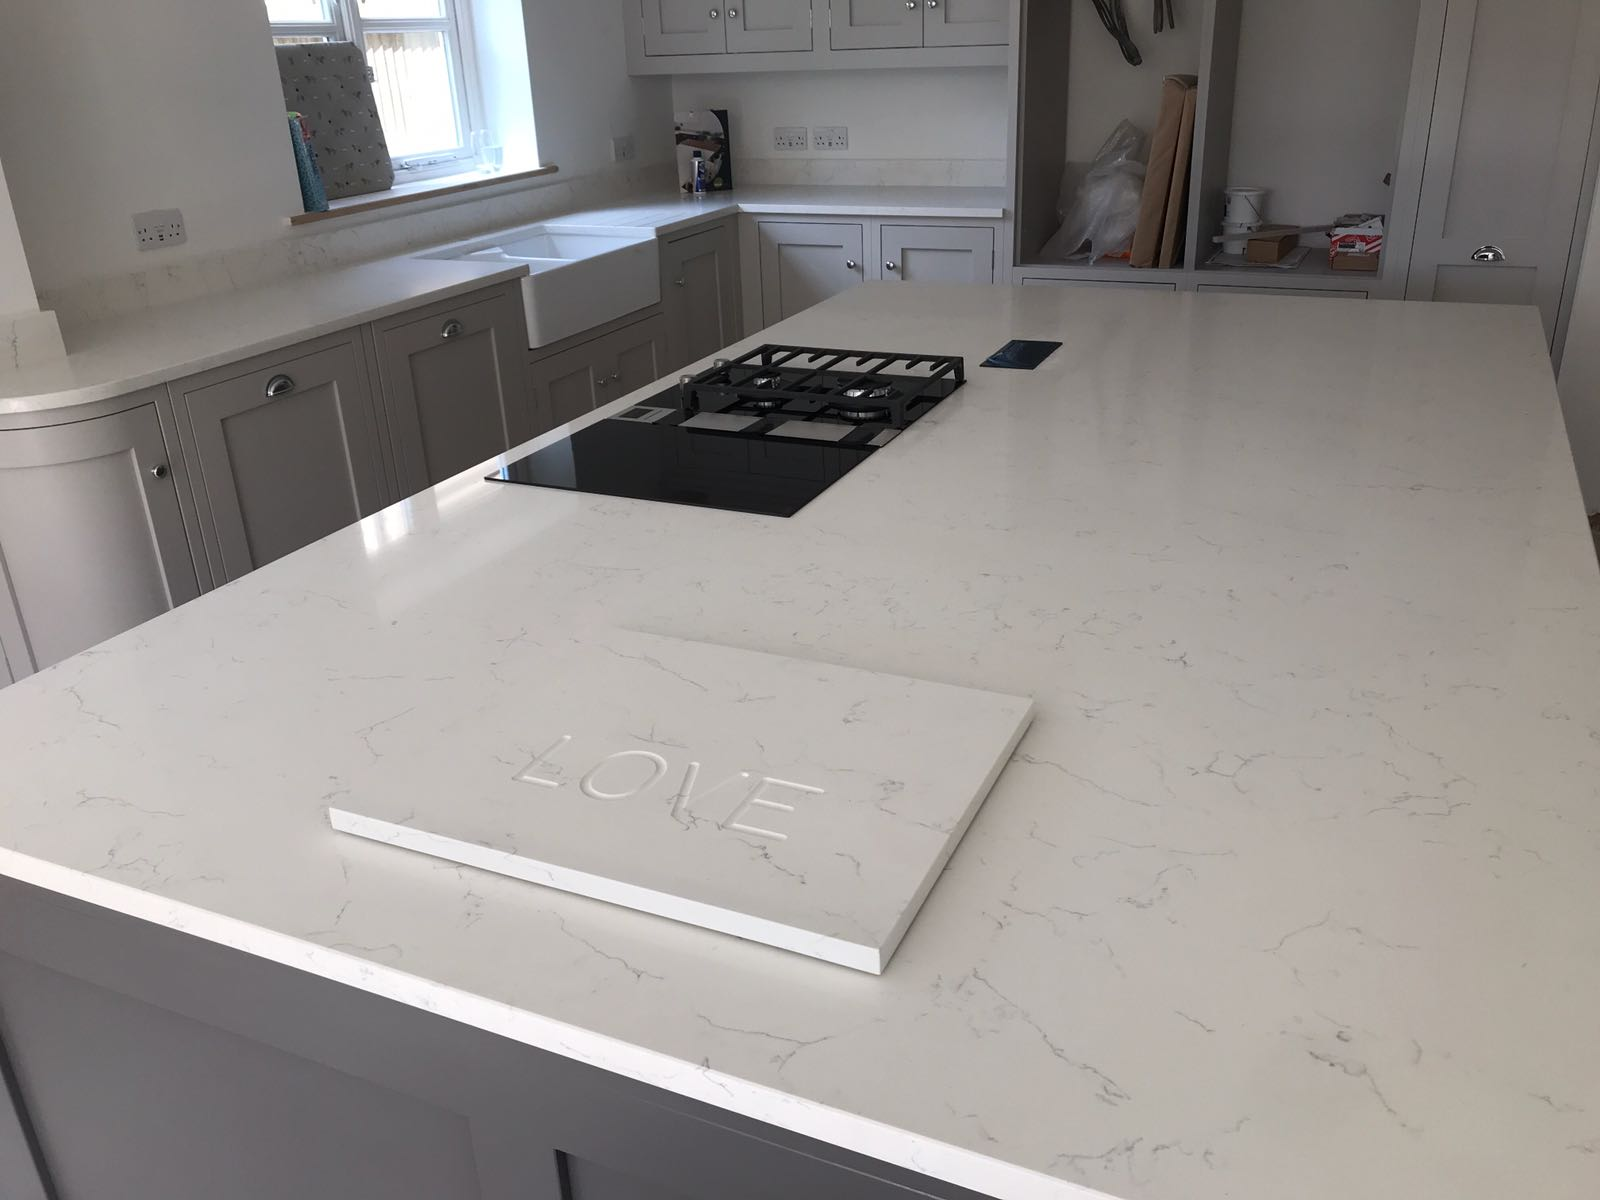 Kitchen of the week… Located in Rickling Green, Essex, showcasing the White Carrera